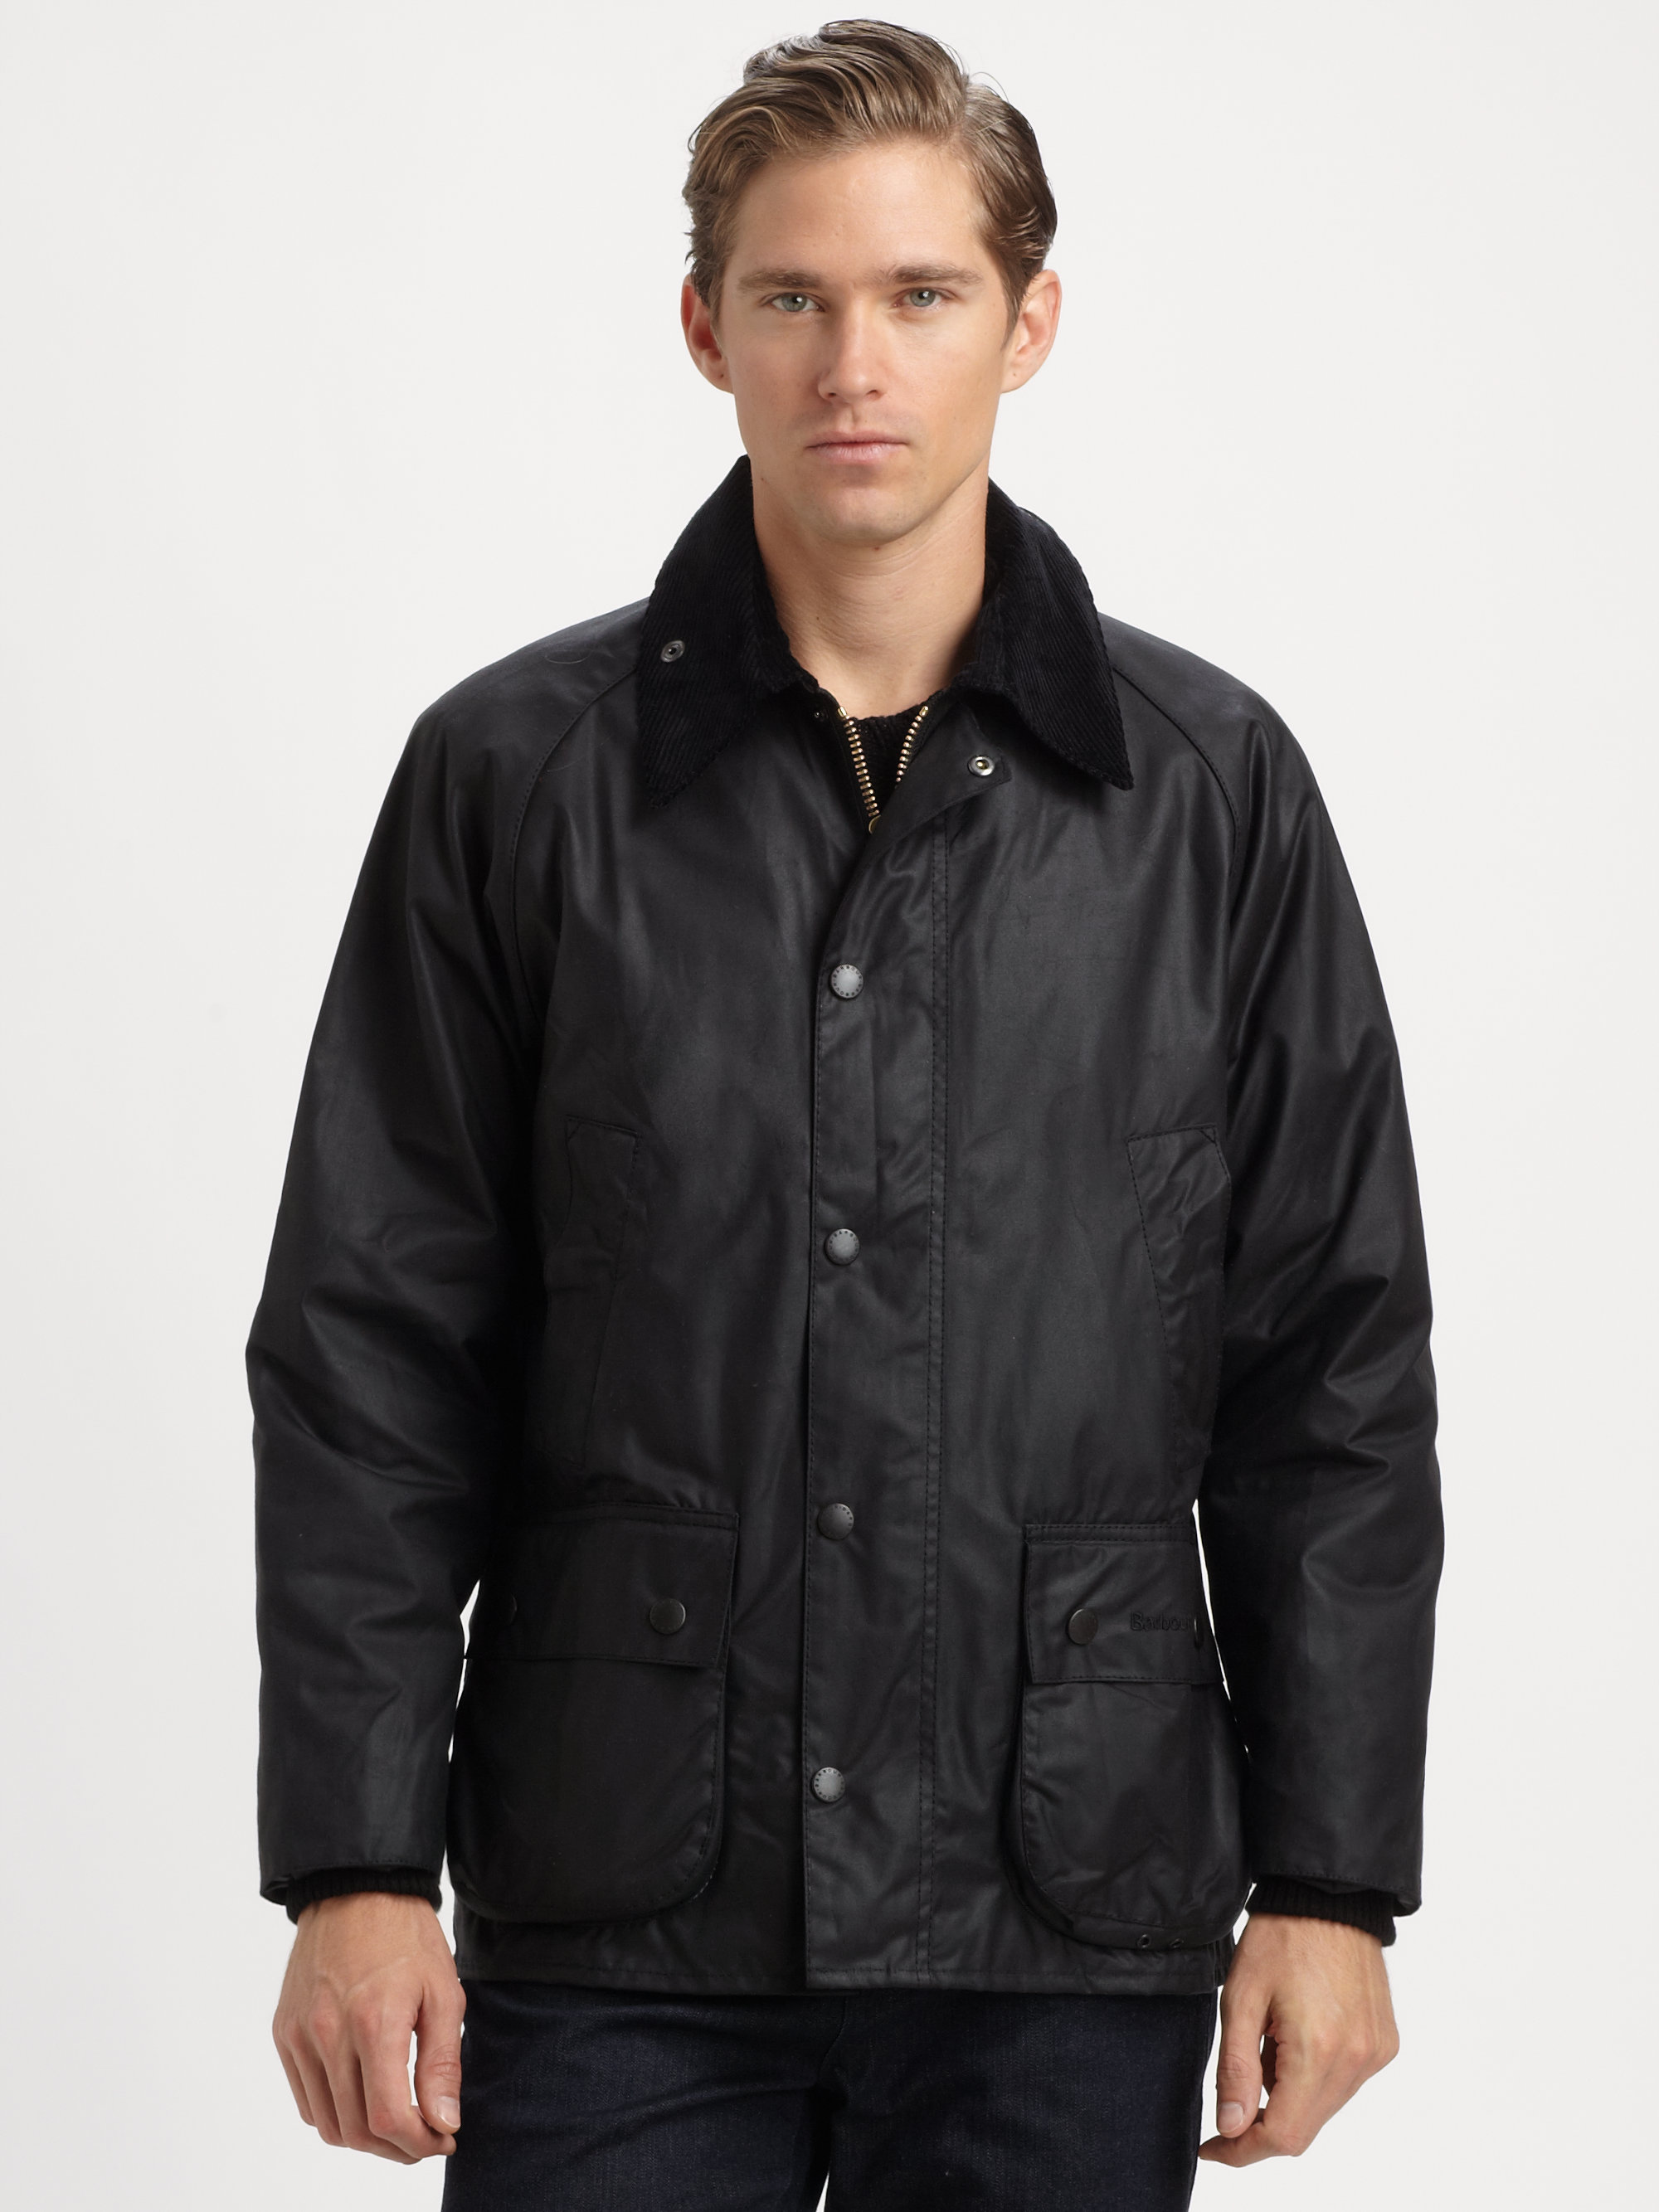 Lyst Barbour Bedale Waxed Cotton Jacket In Black For Men